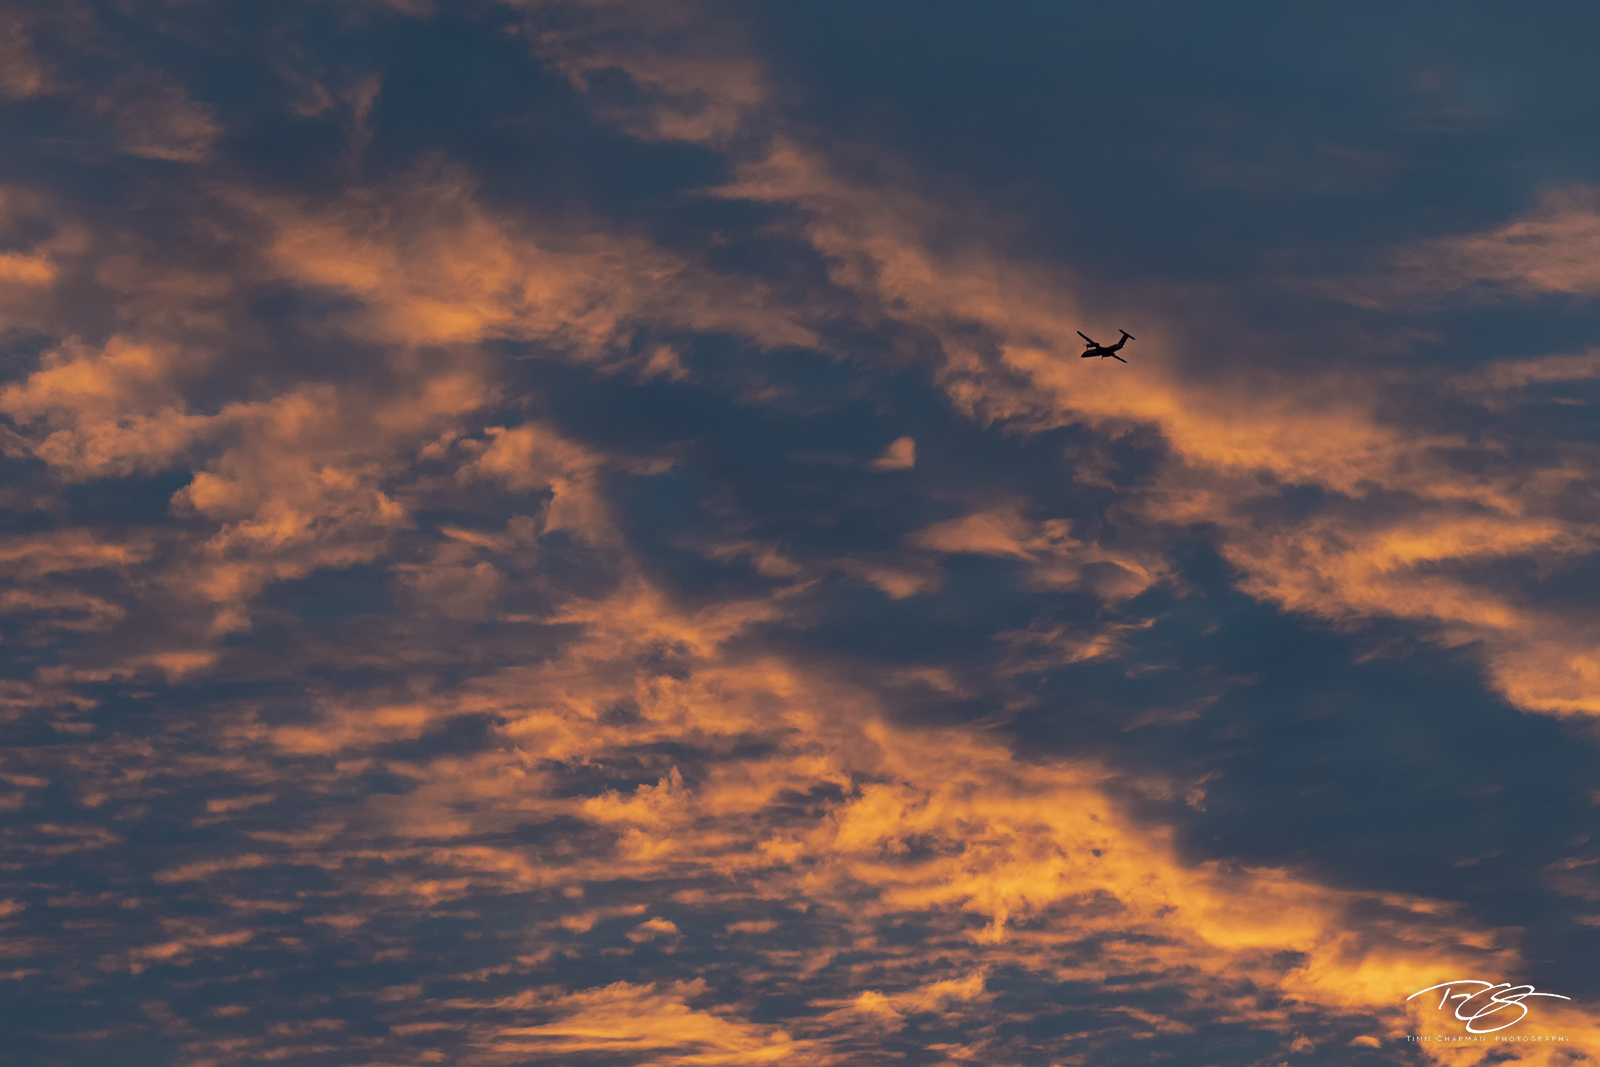 clouds; sky; fiery; colourful; colorful; cloudy; airplane; aircraft; flying; silhouette; flight; aircraft in flight; plane; plane in flight